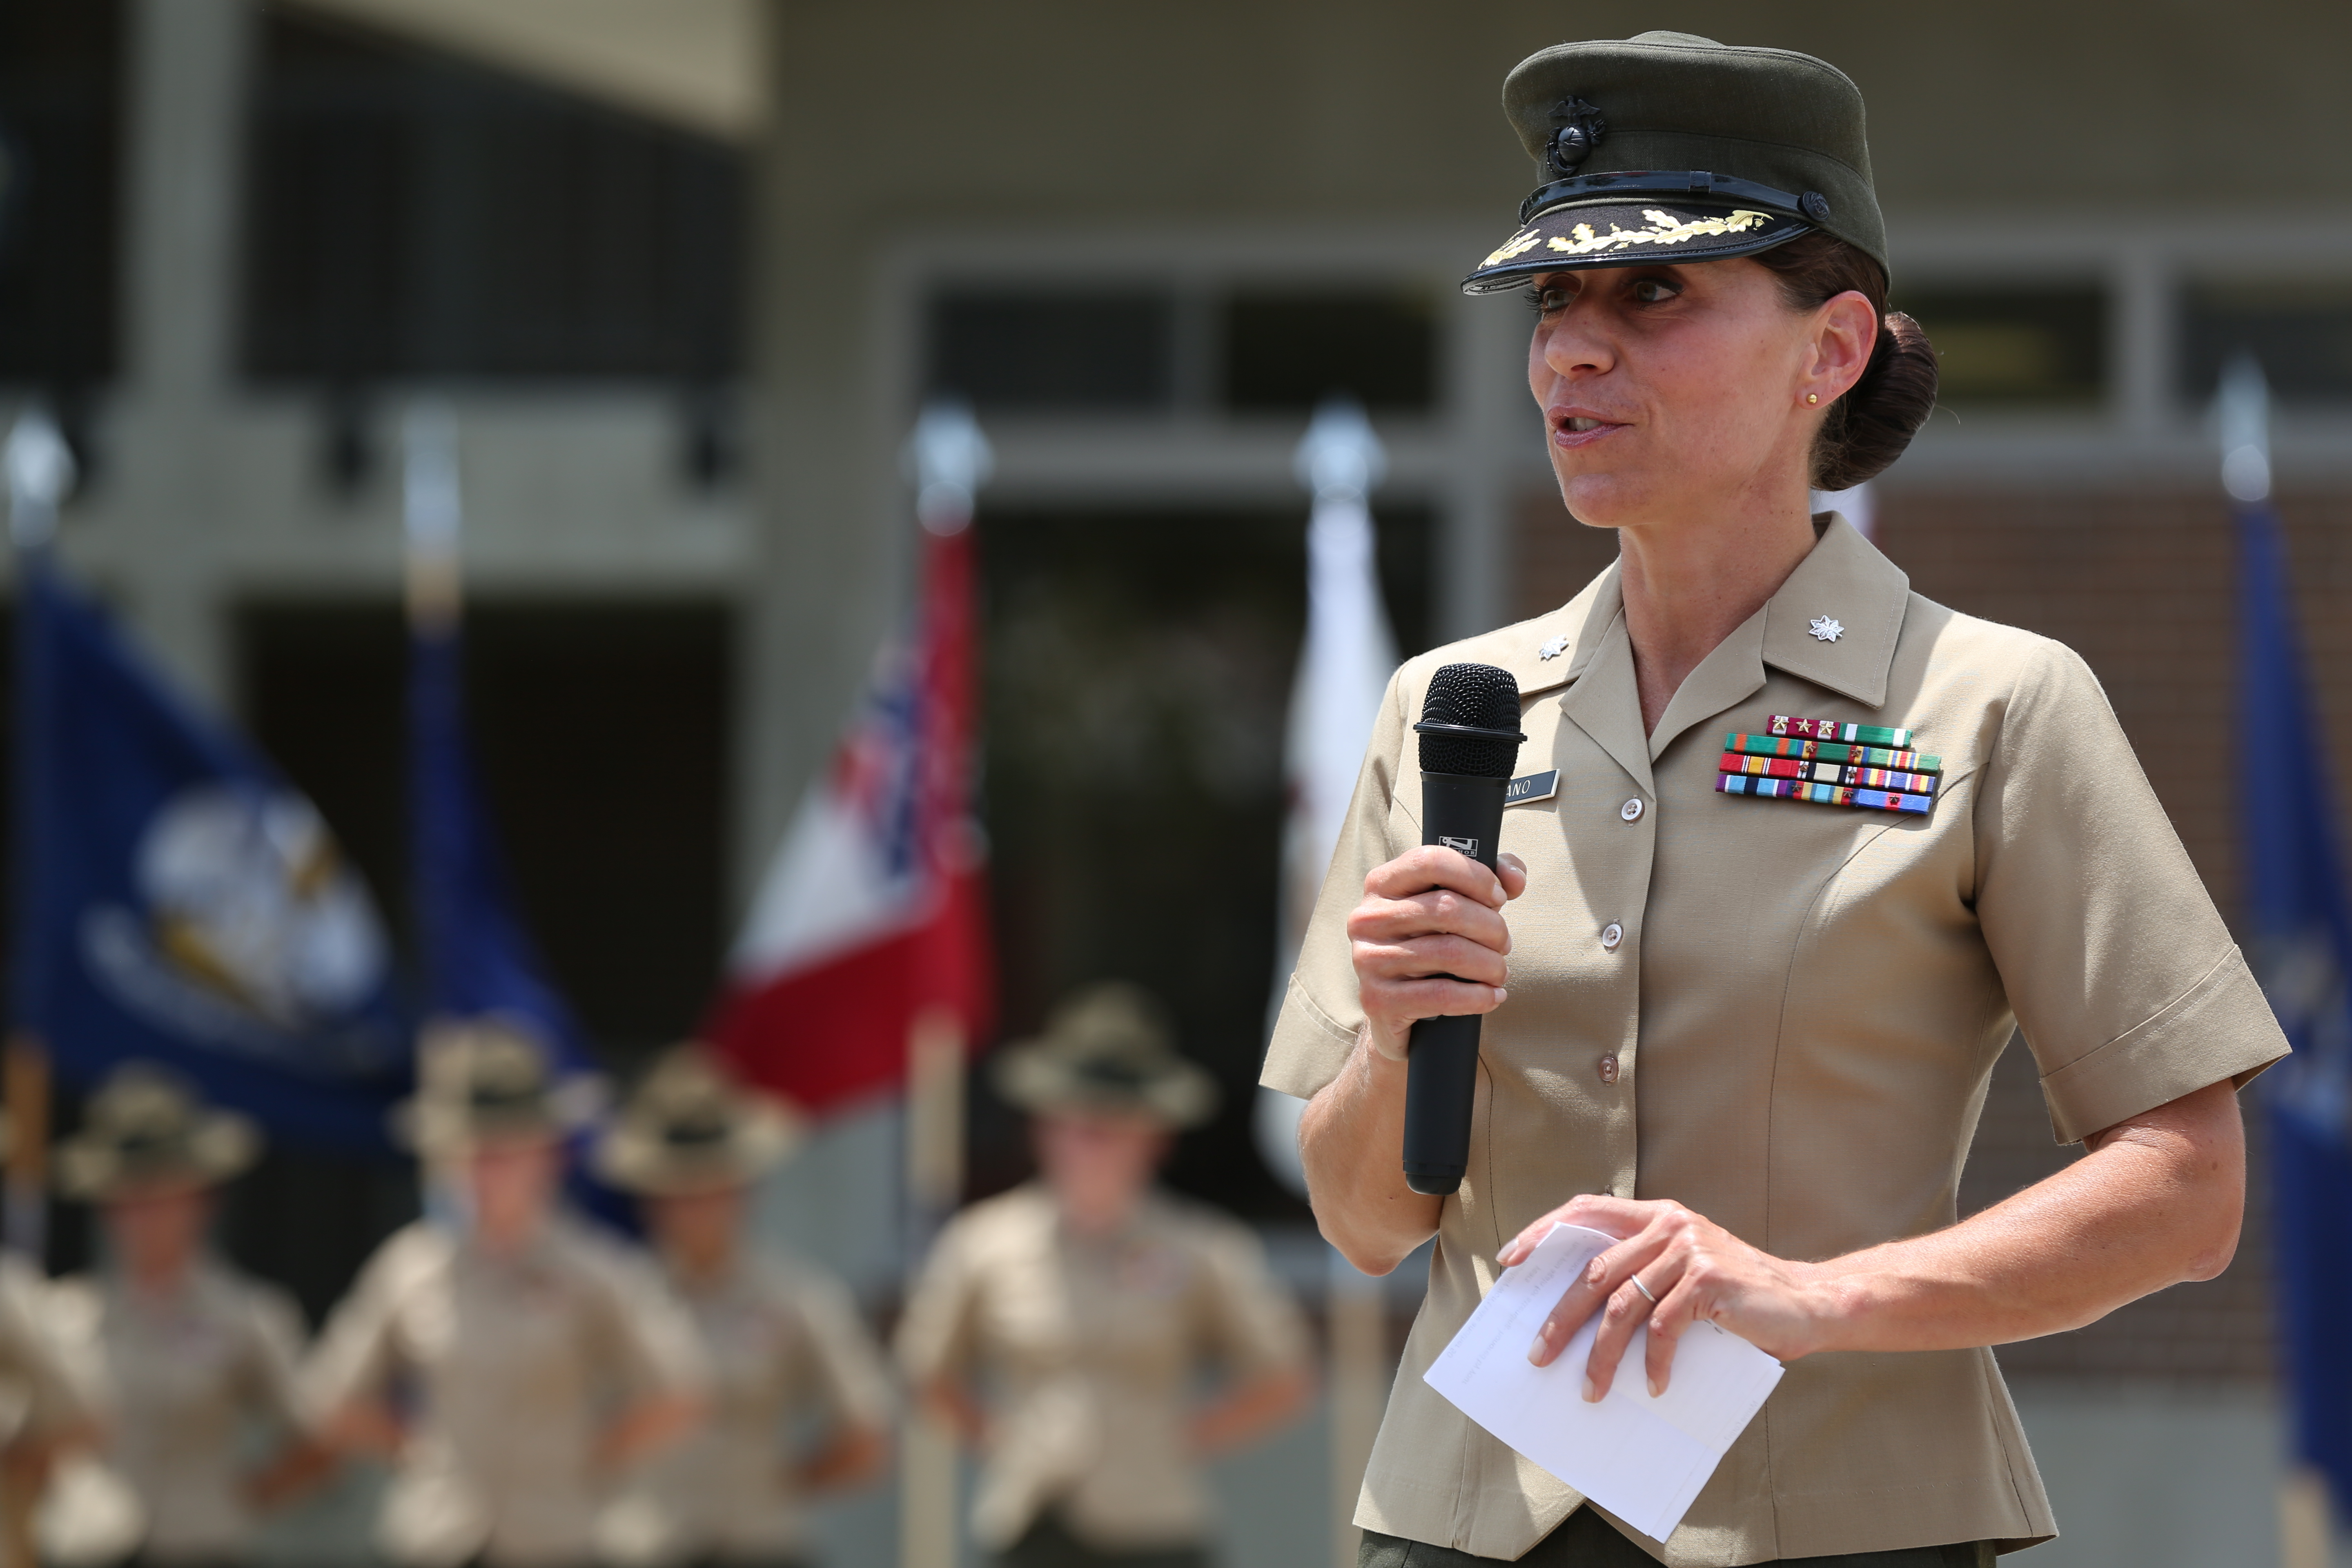 This retired Marine's book says the Corps has a history of gender bias